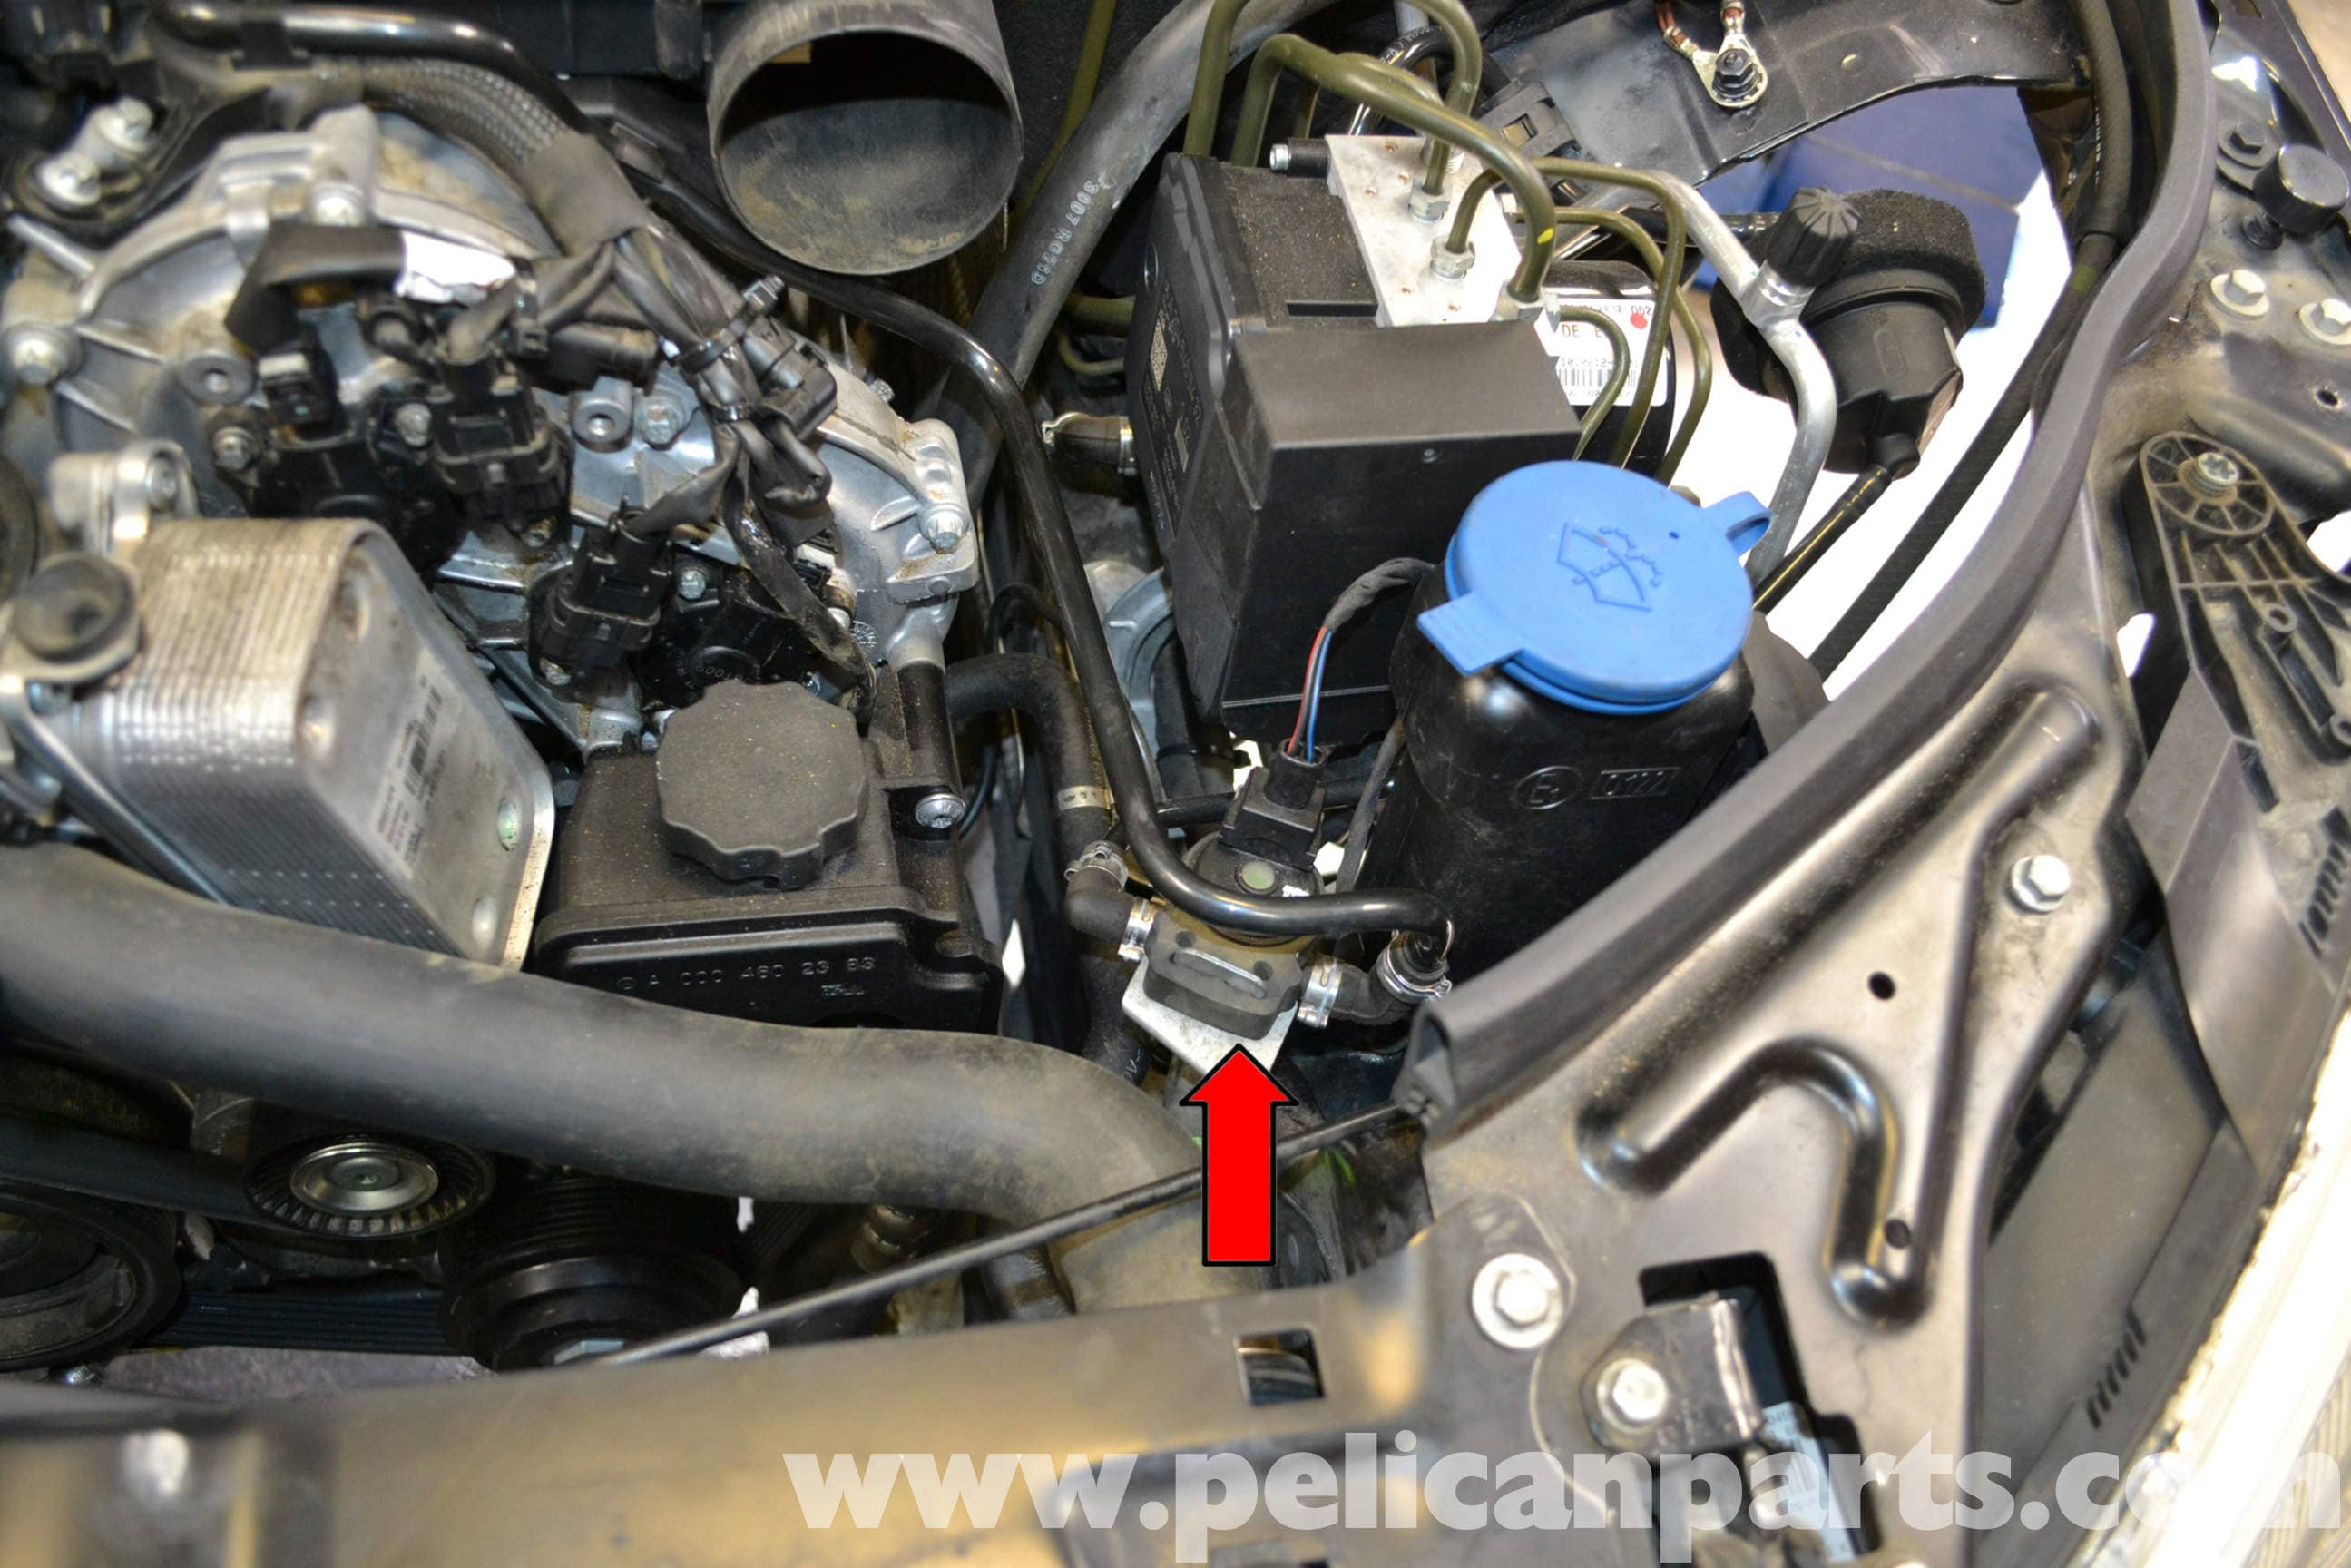 2013 Sprinter Fuel Filter Replacement 2012 Location